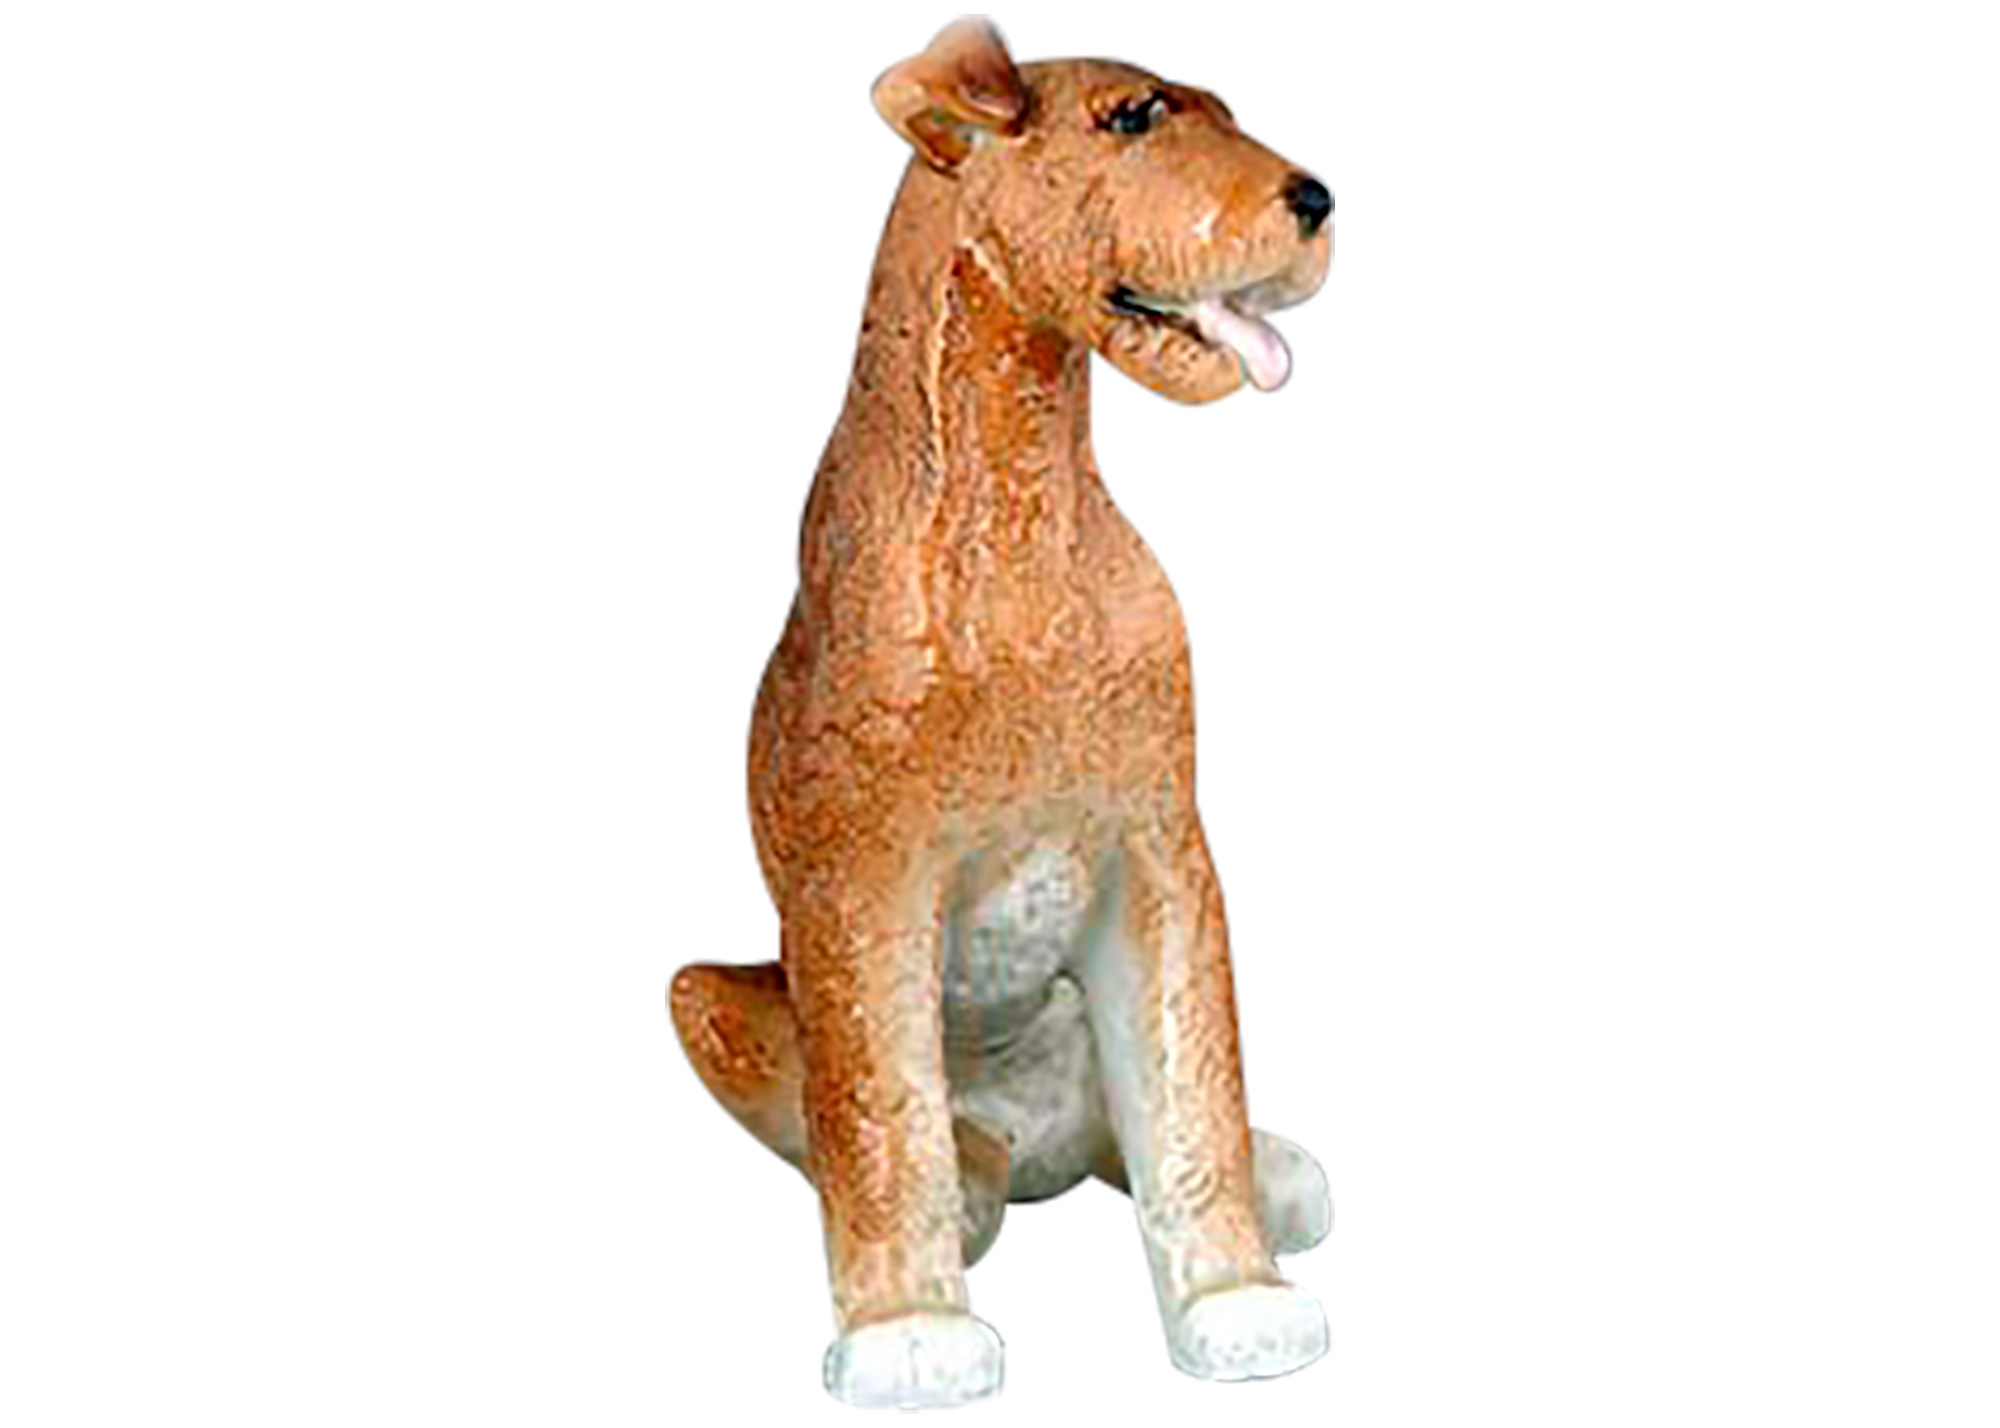 Buy Airdale Dog Figurine at GoldenCockerel.com